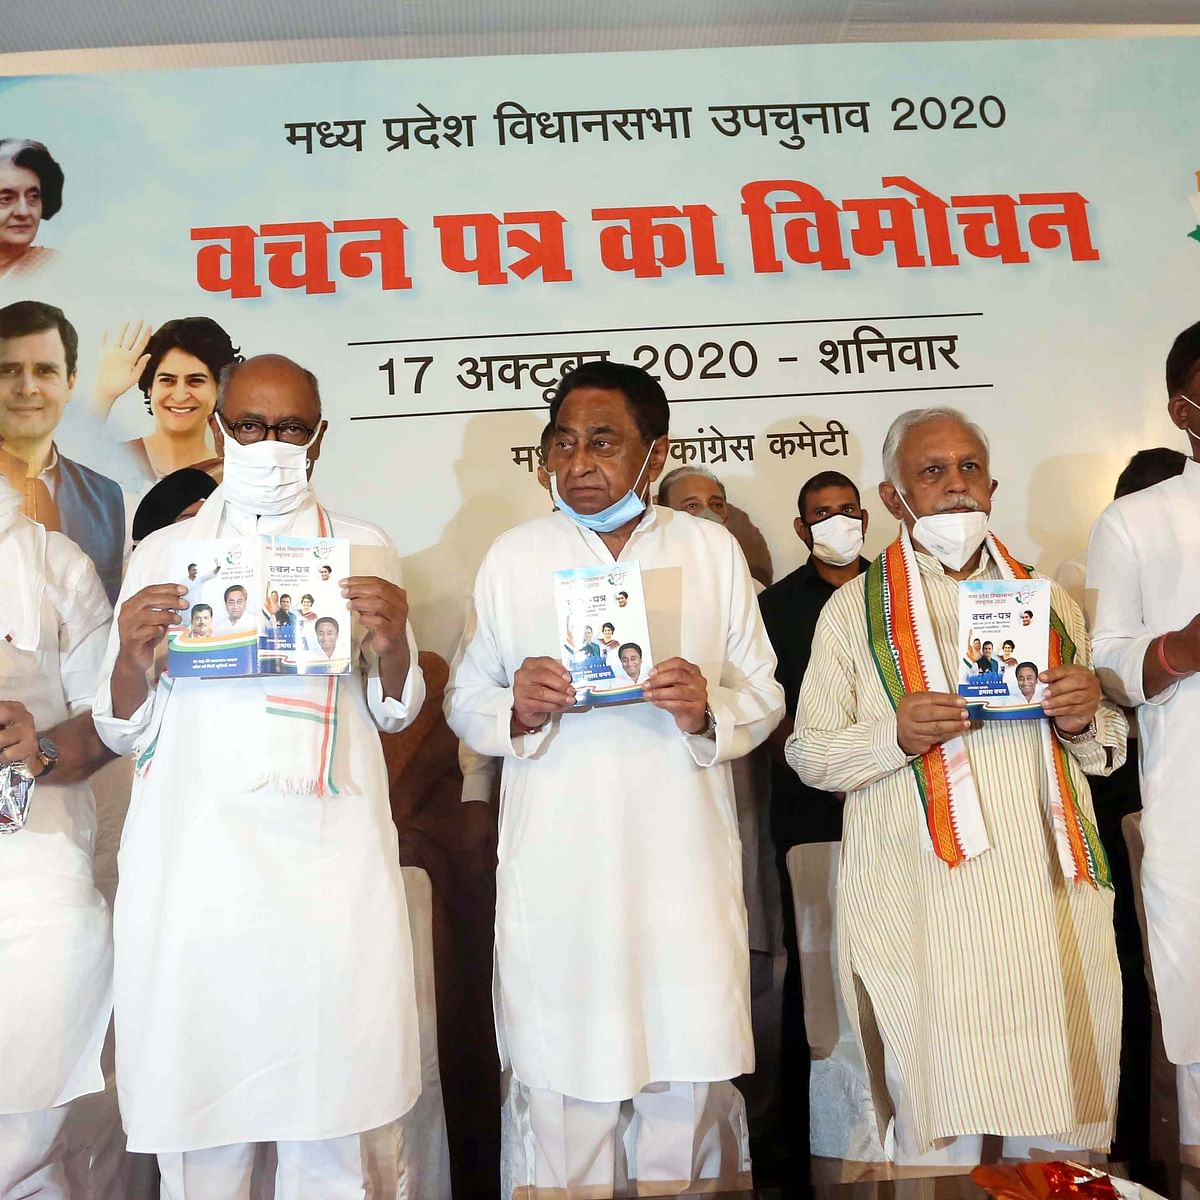 Madhya Pradesh Bypolls: Congress Vachan Patra for you